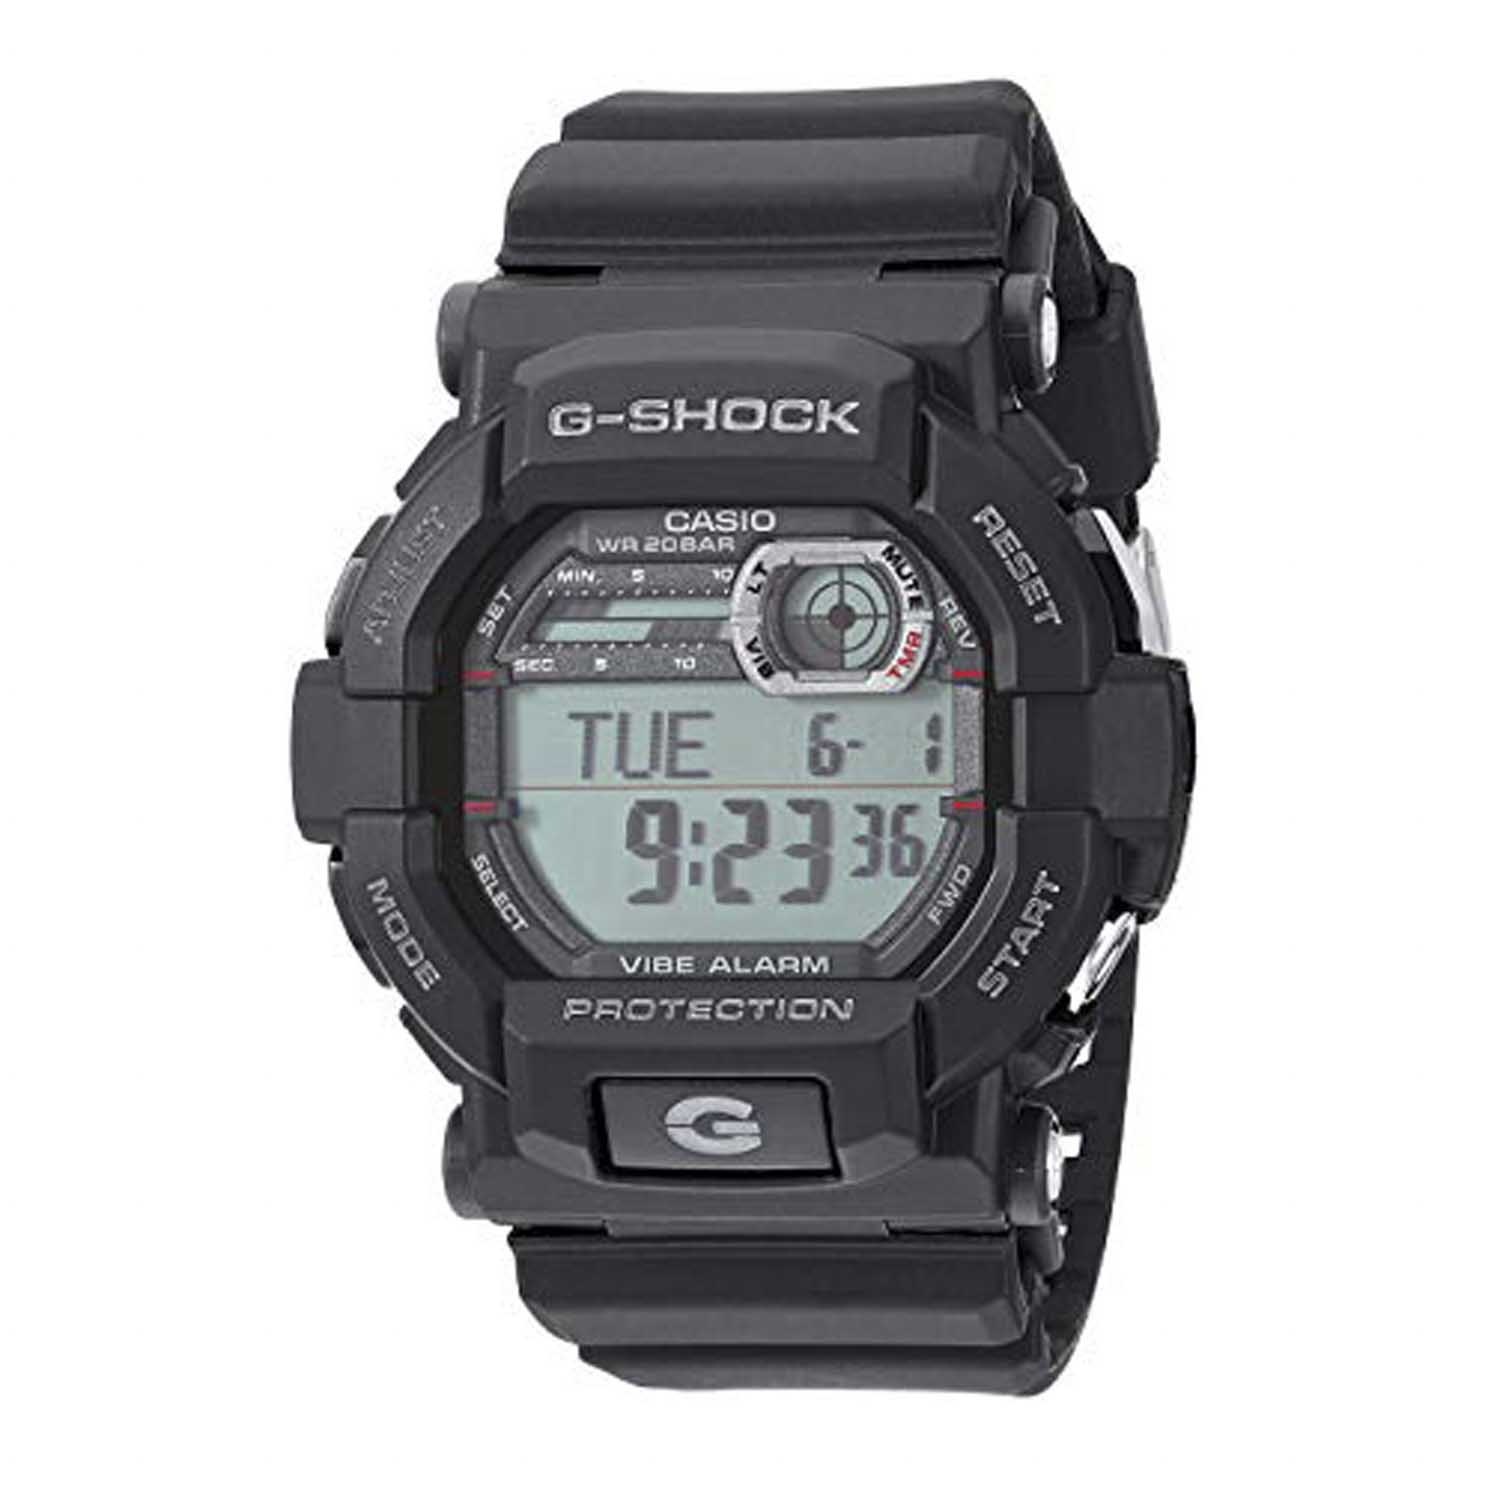 Casio G-Shock GD350-1CR Digital Watch